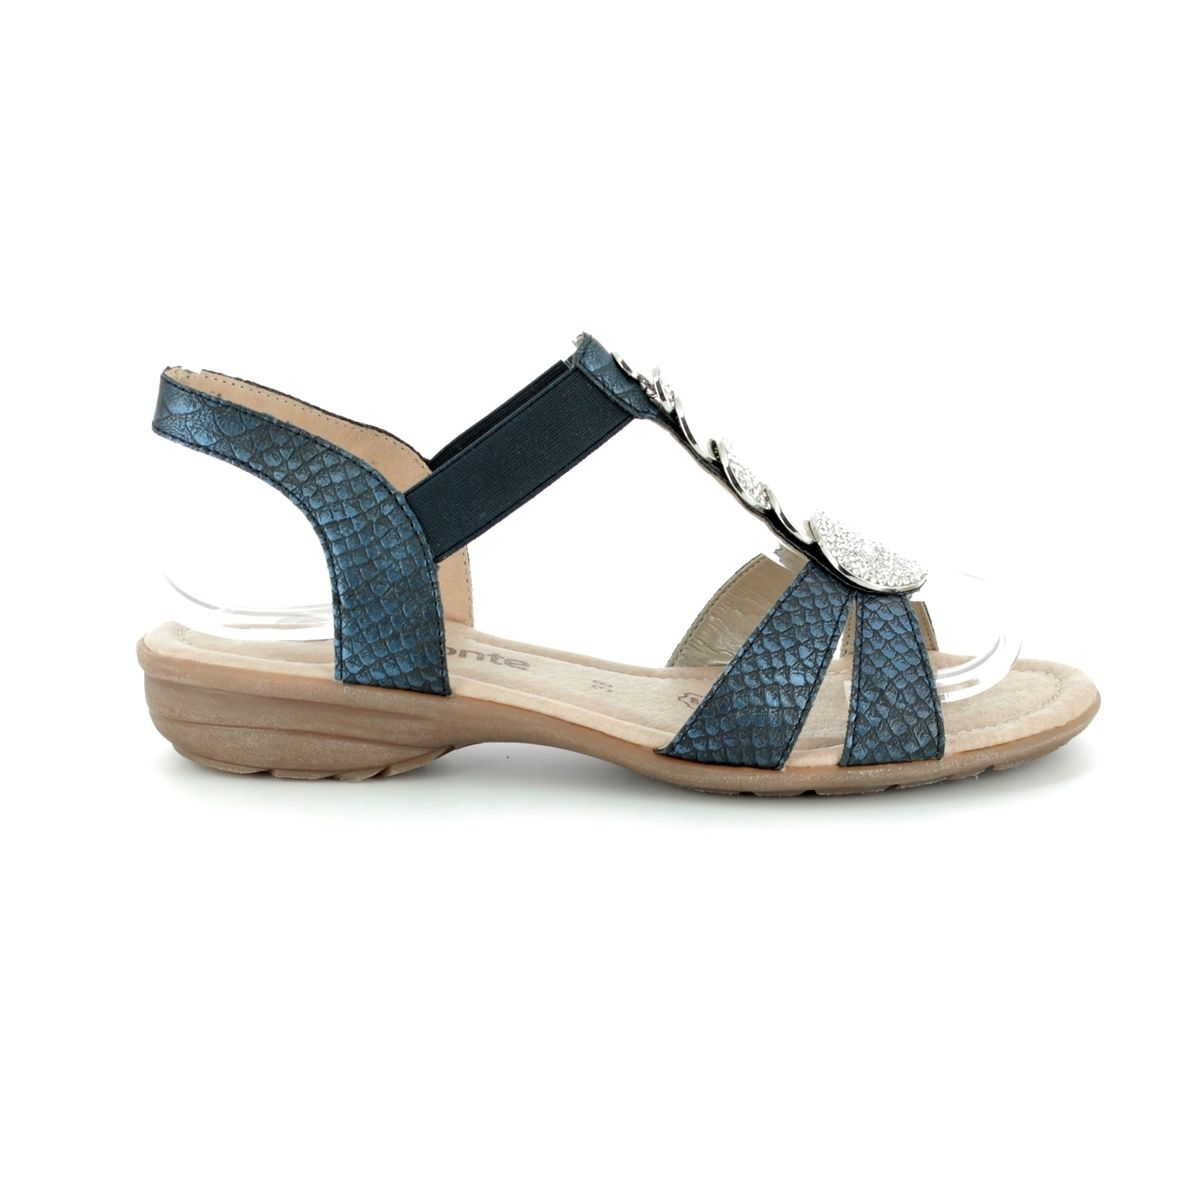 0b86423df1fe Remonte Sandals - Navy multi - R3638-14 ODEON